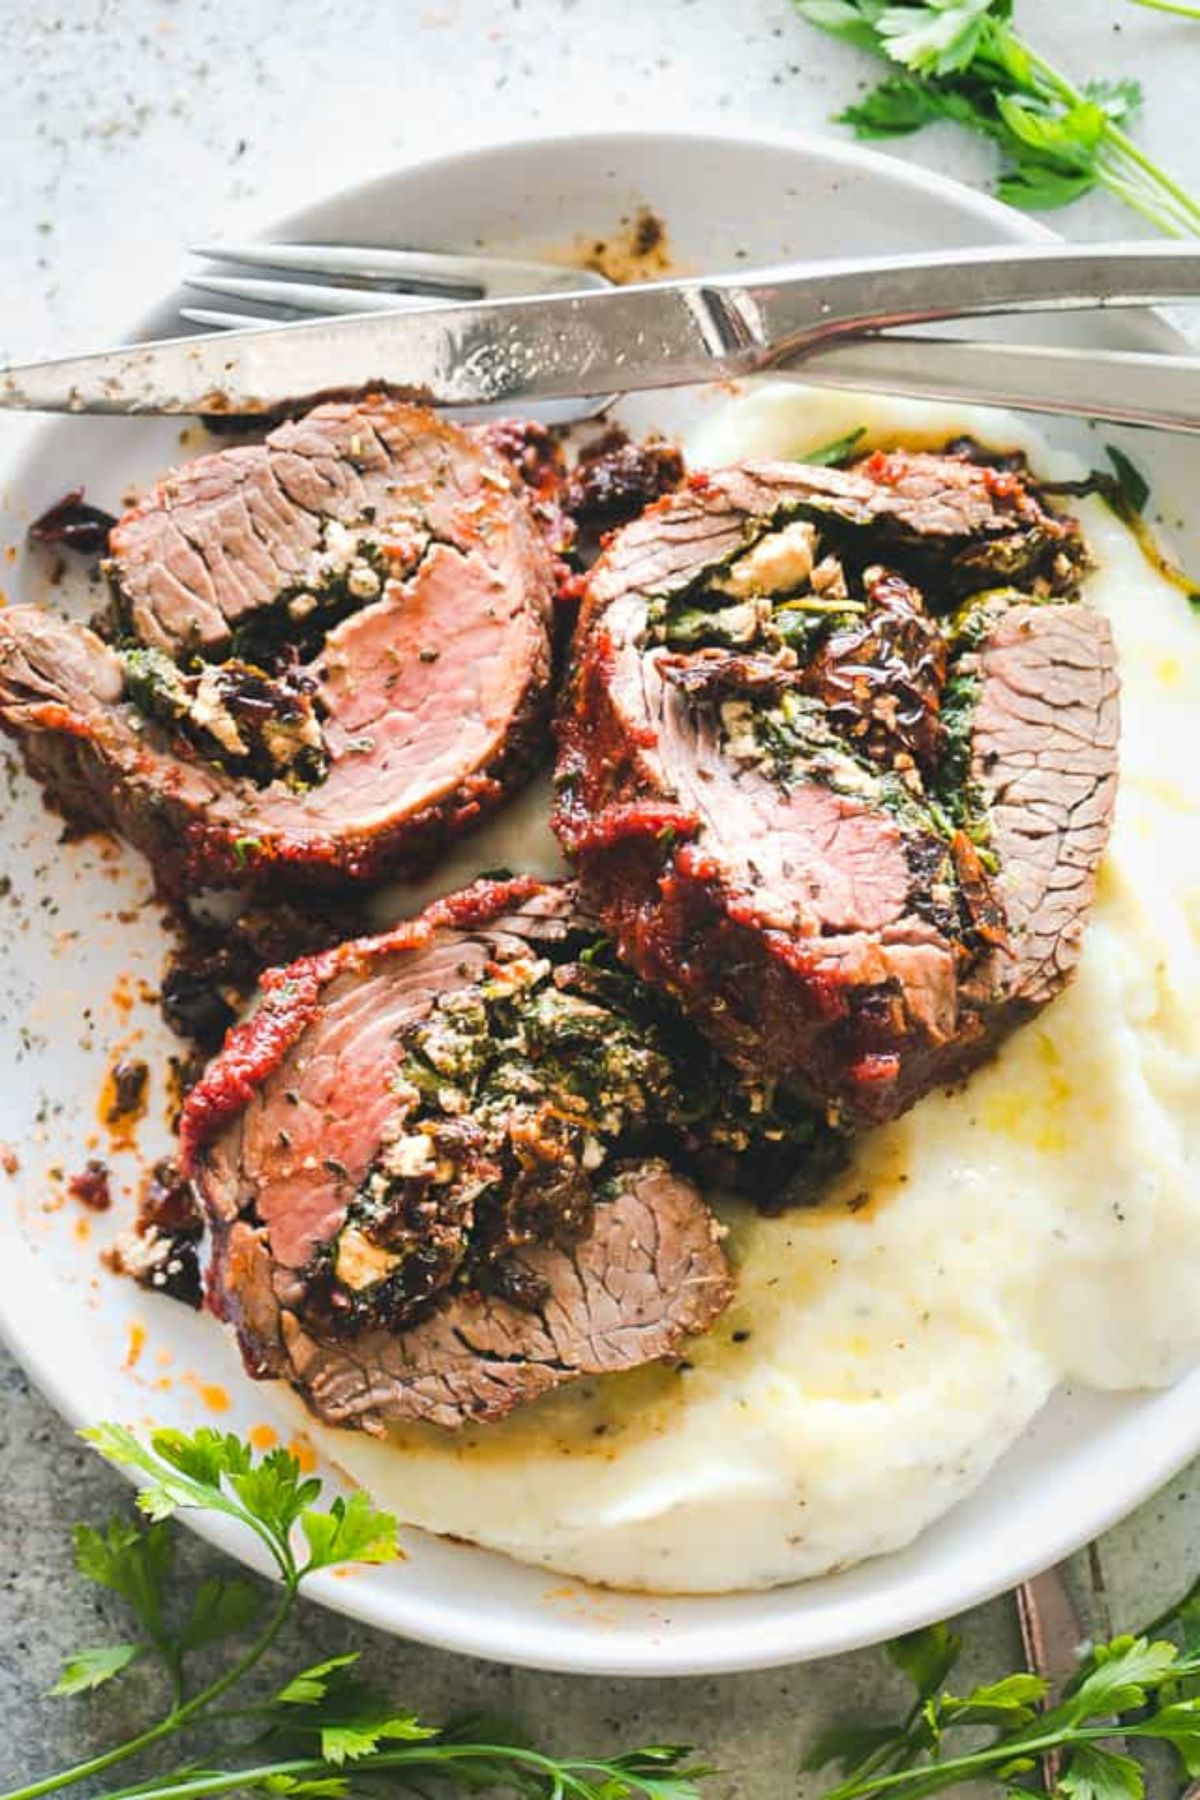 A white plate holds 3 slices of stuffed flank steak on a bed of mash. A knife and fork are at the top of the plate resting on each other. Herbs are scattered around